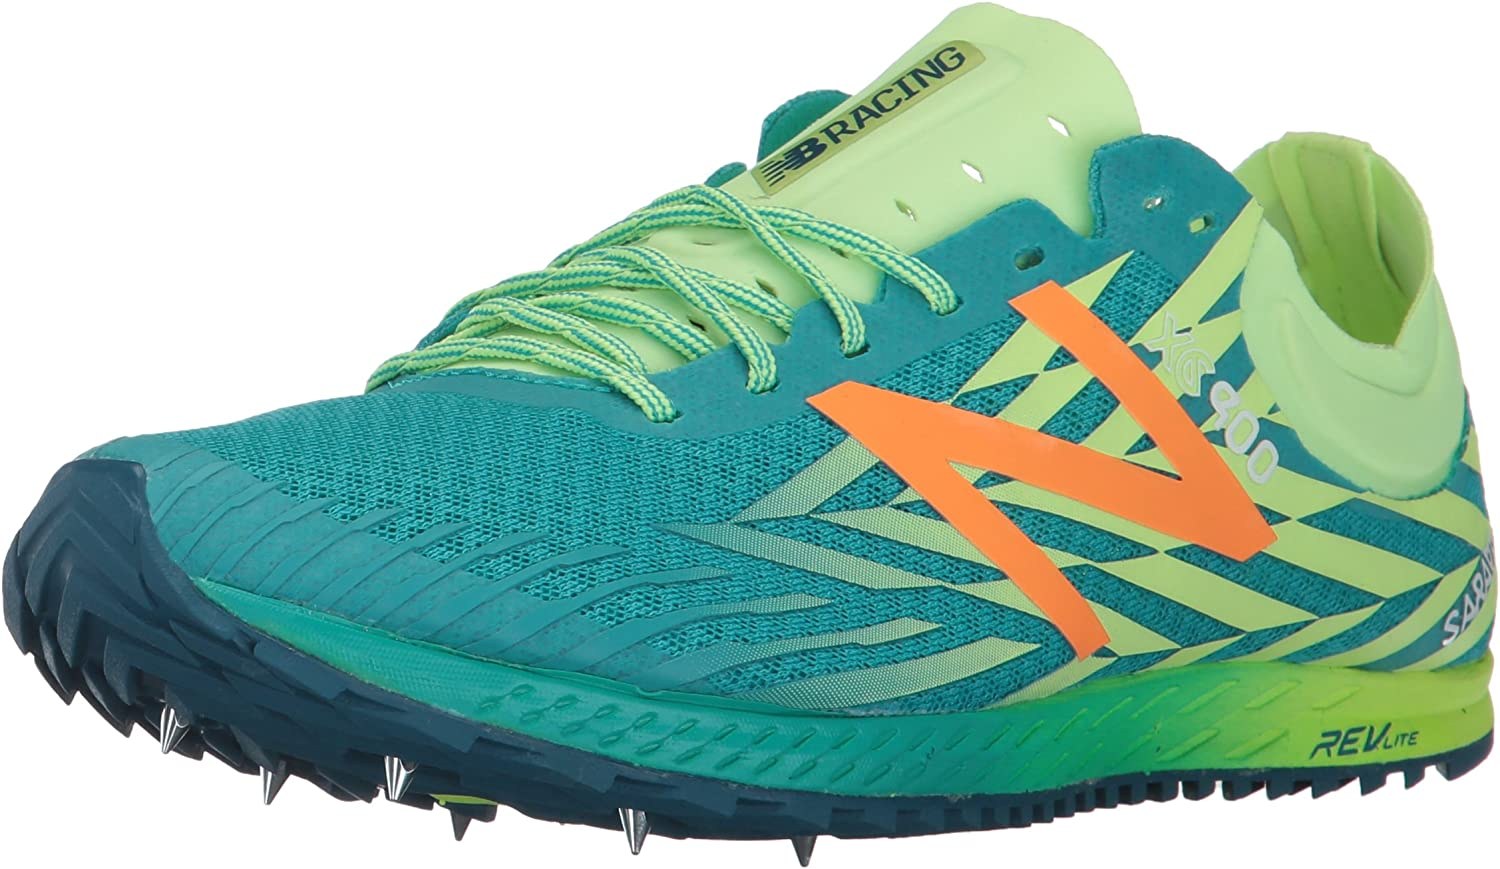 New Balance Women's 900V Removable Spike Track-shoes